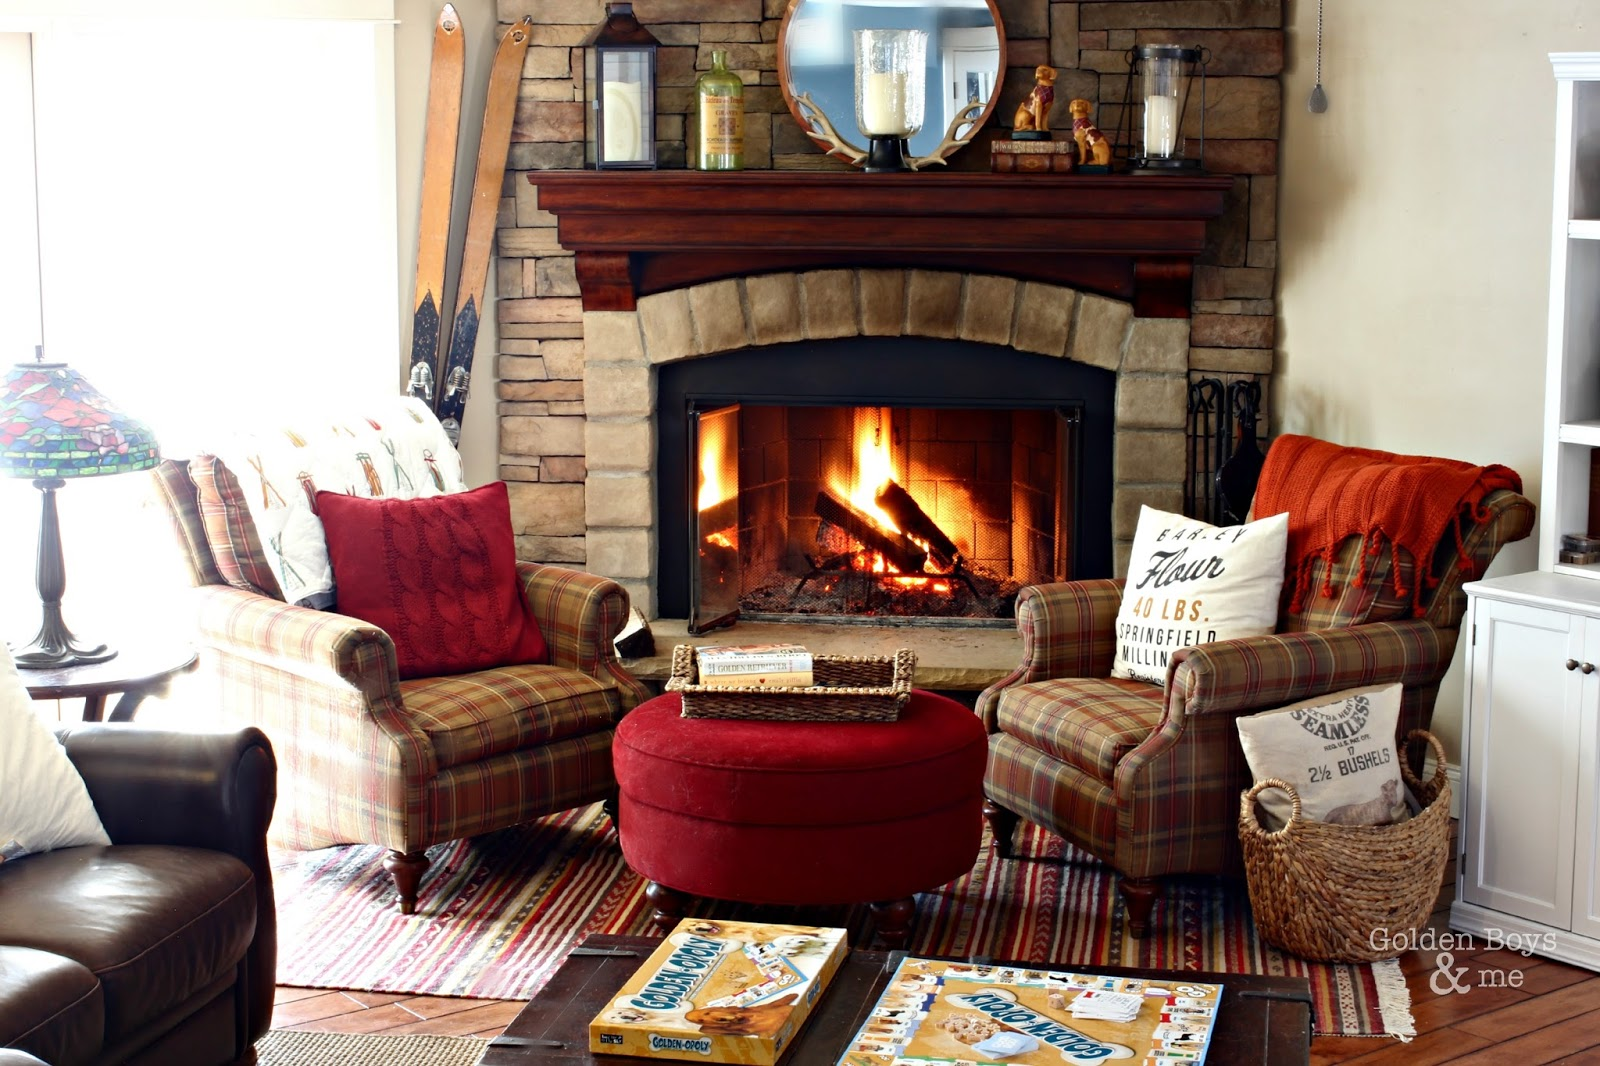 Corner stone fireplace in winter family room-www.goldenboysandme.com